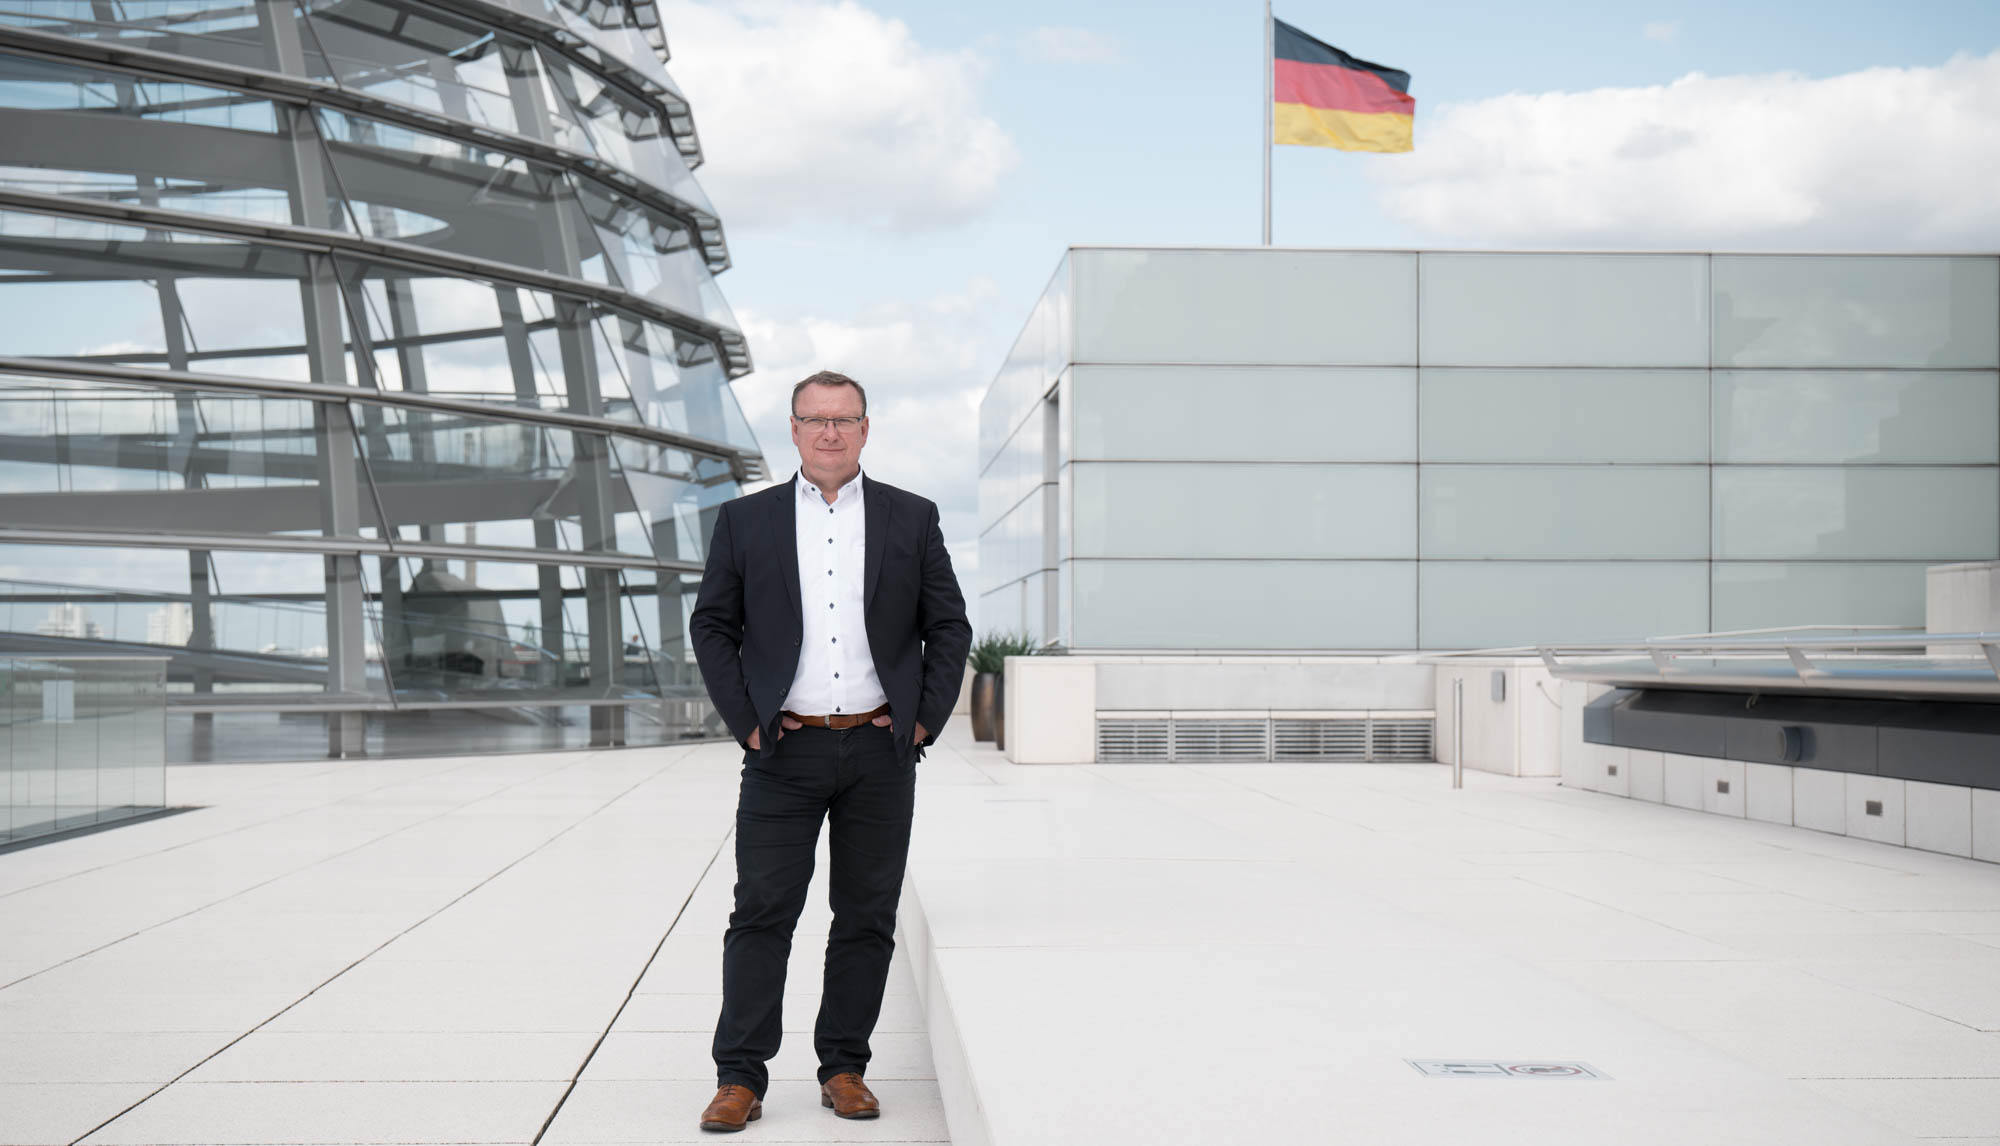 September 2020 MdB Uwe Schmidt, Bundestag Berlin